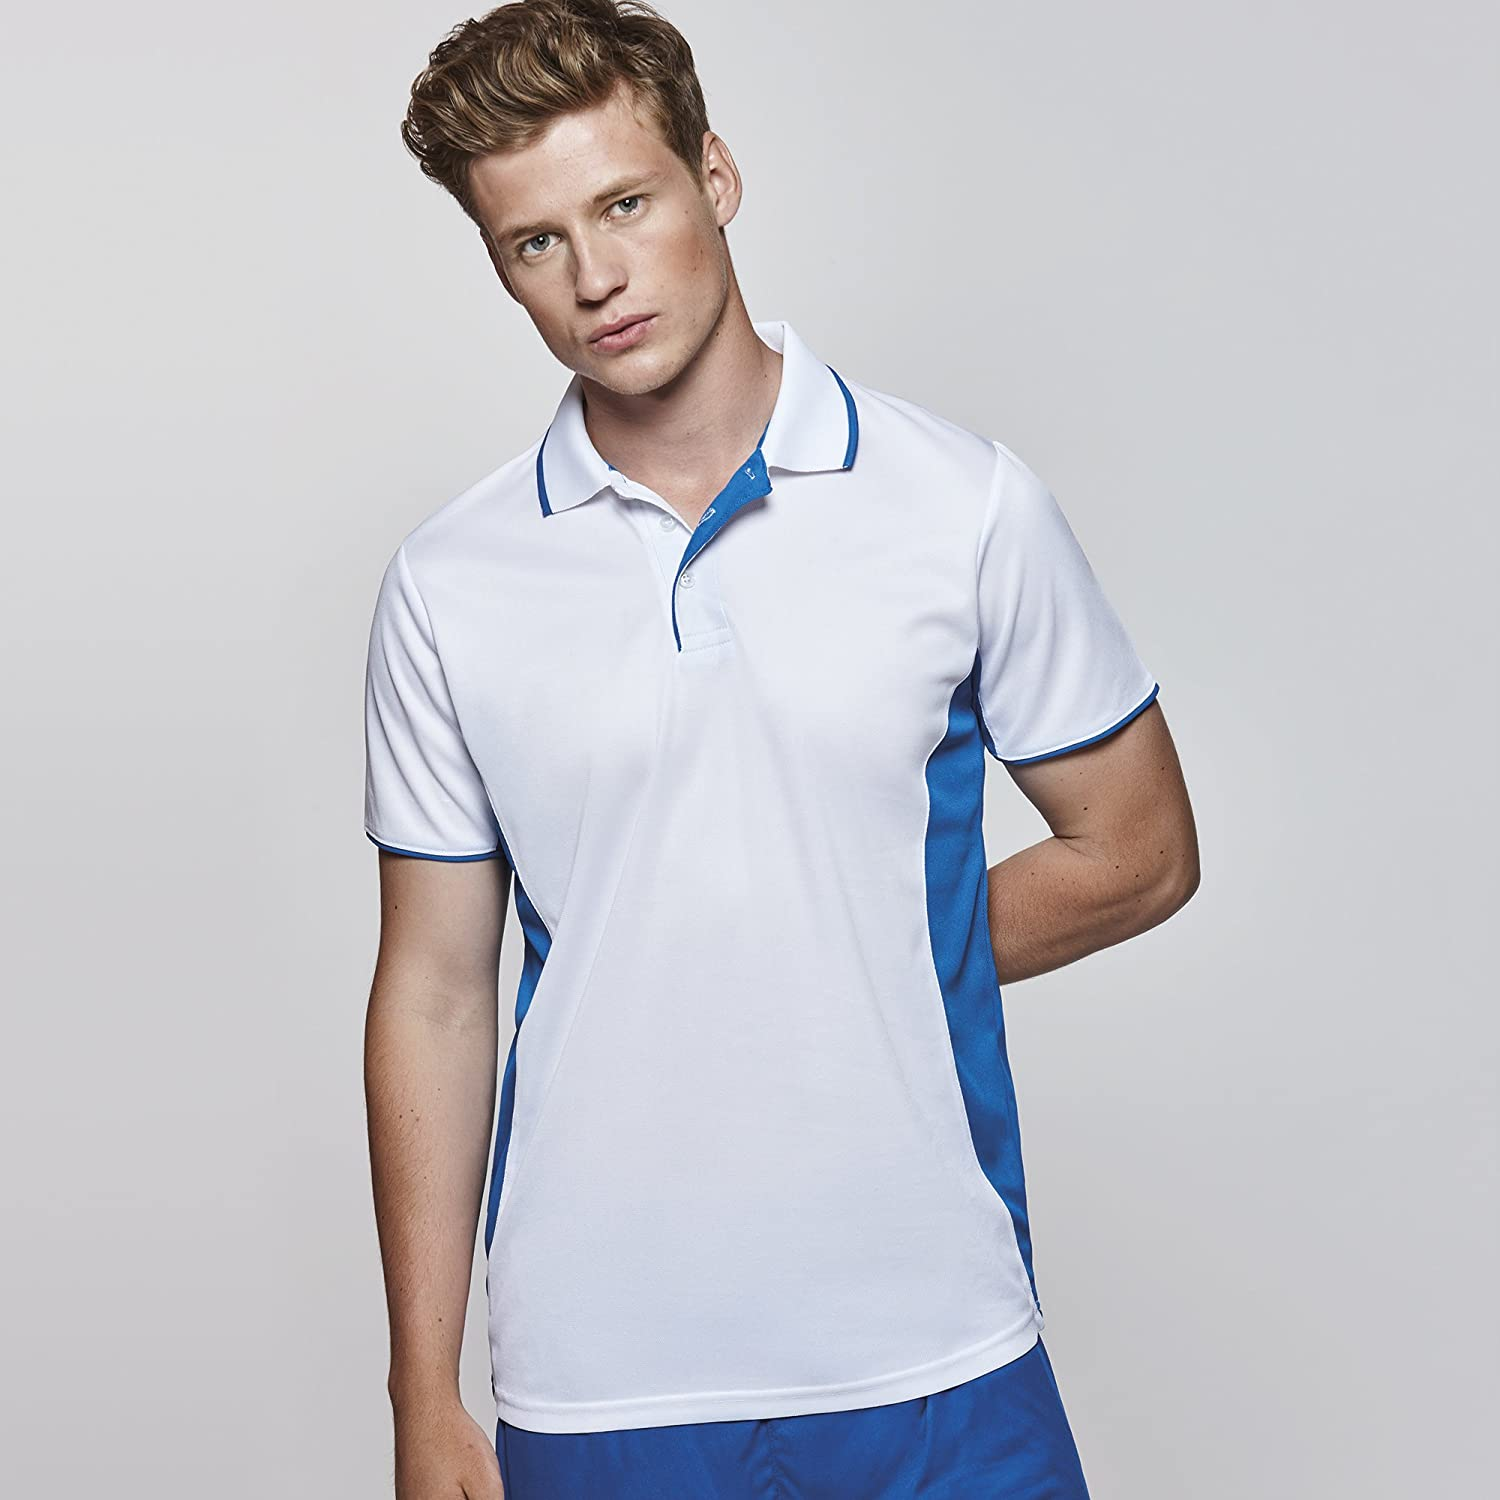 Impex12 Mens Two Color Sport Polo Shirt Golf Tennis Sportswear